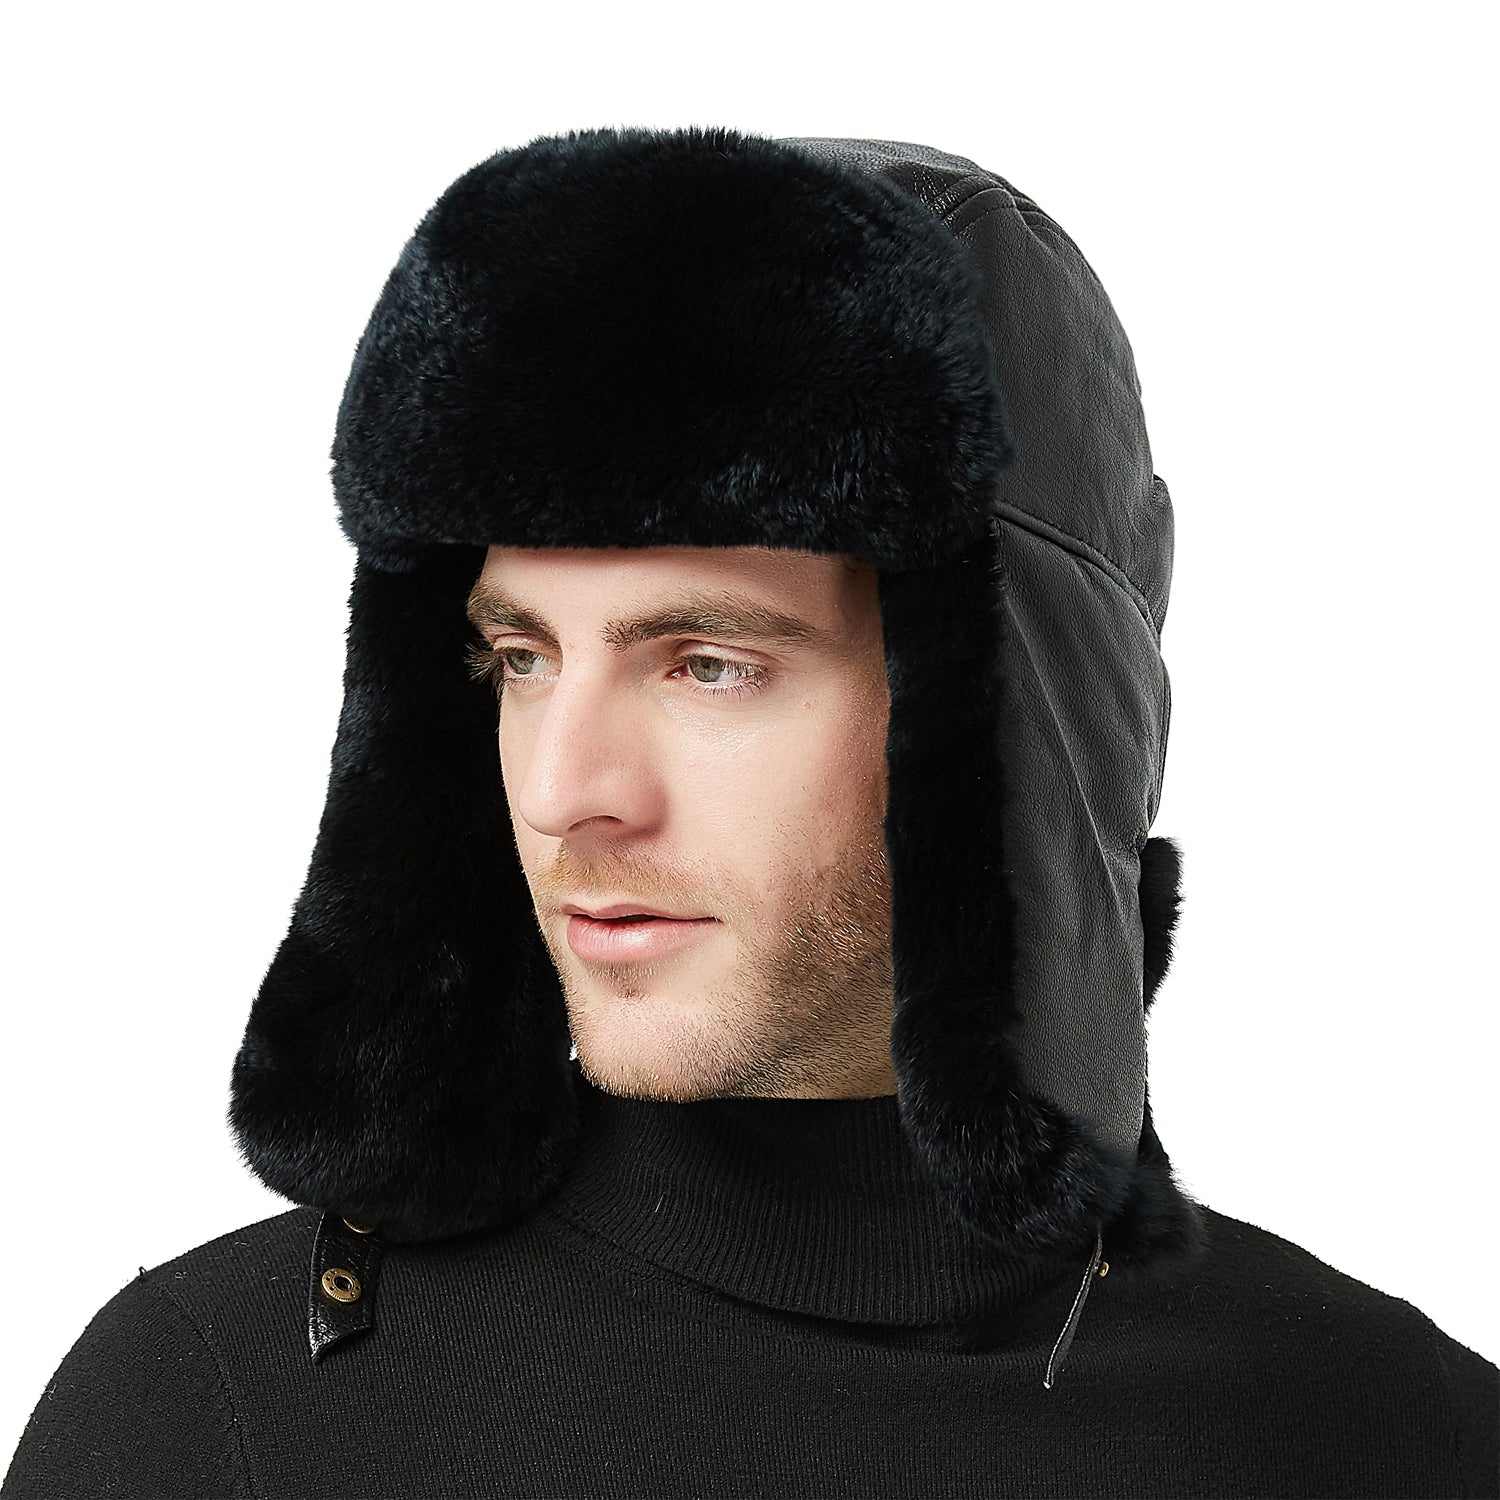 b10fa19260 37 Sheep Leather Rabbit Fur Aviator Russian Ushanka Ear Flap Winter Me -  IKEPOD